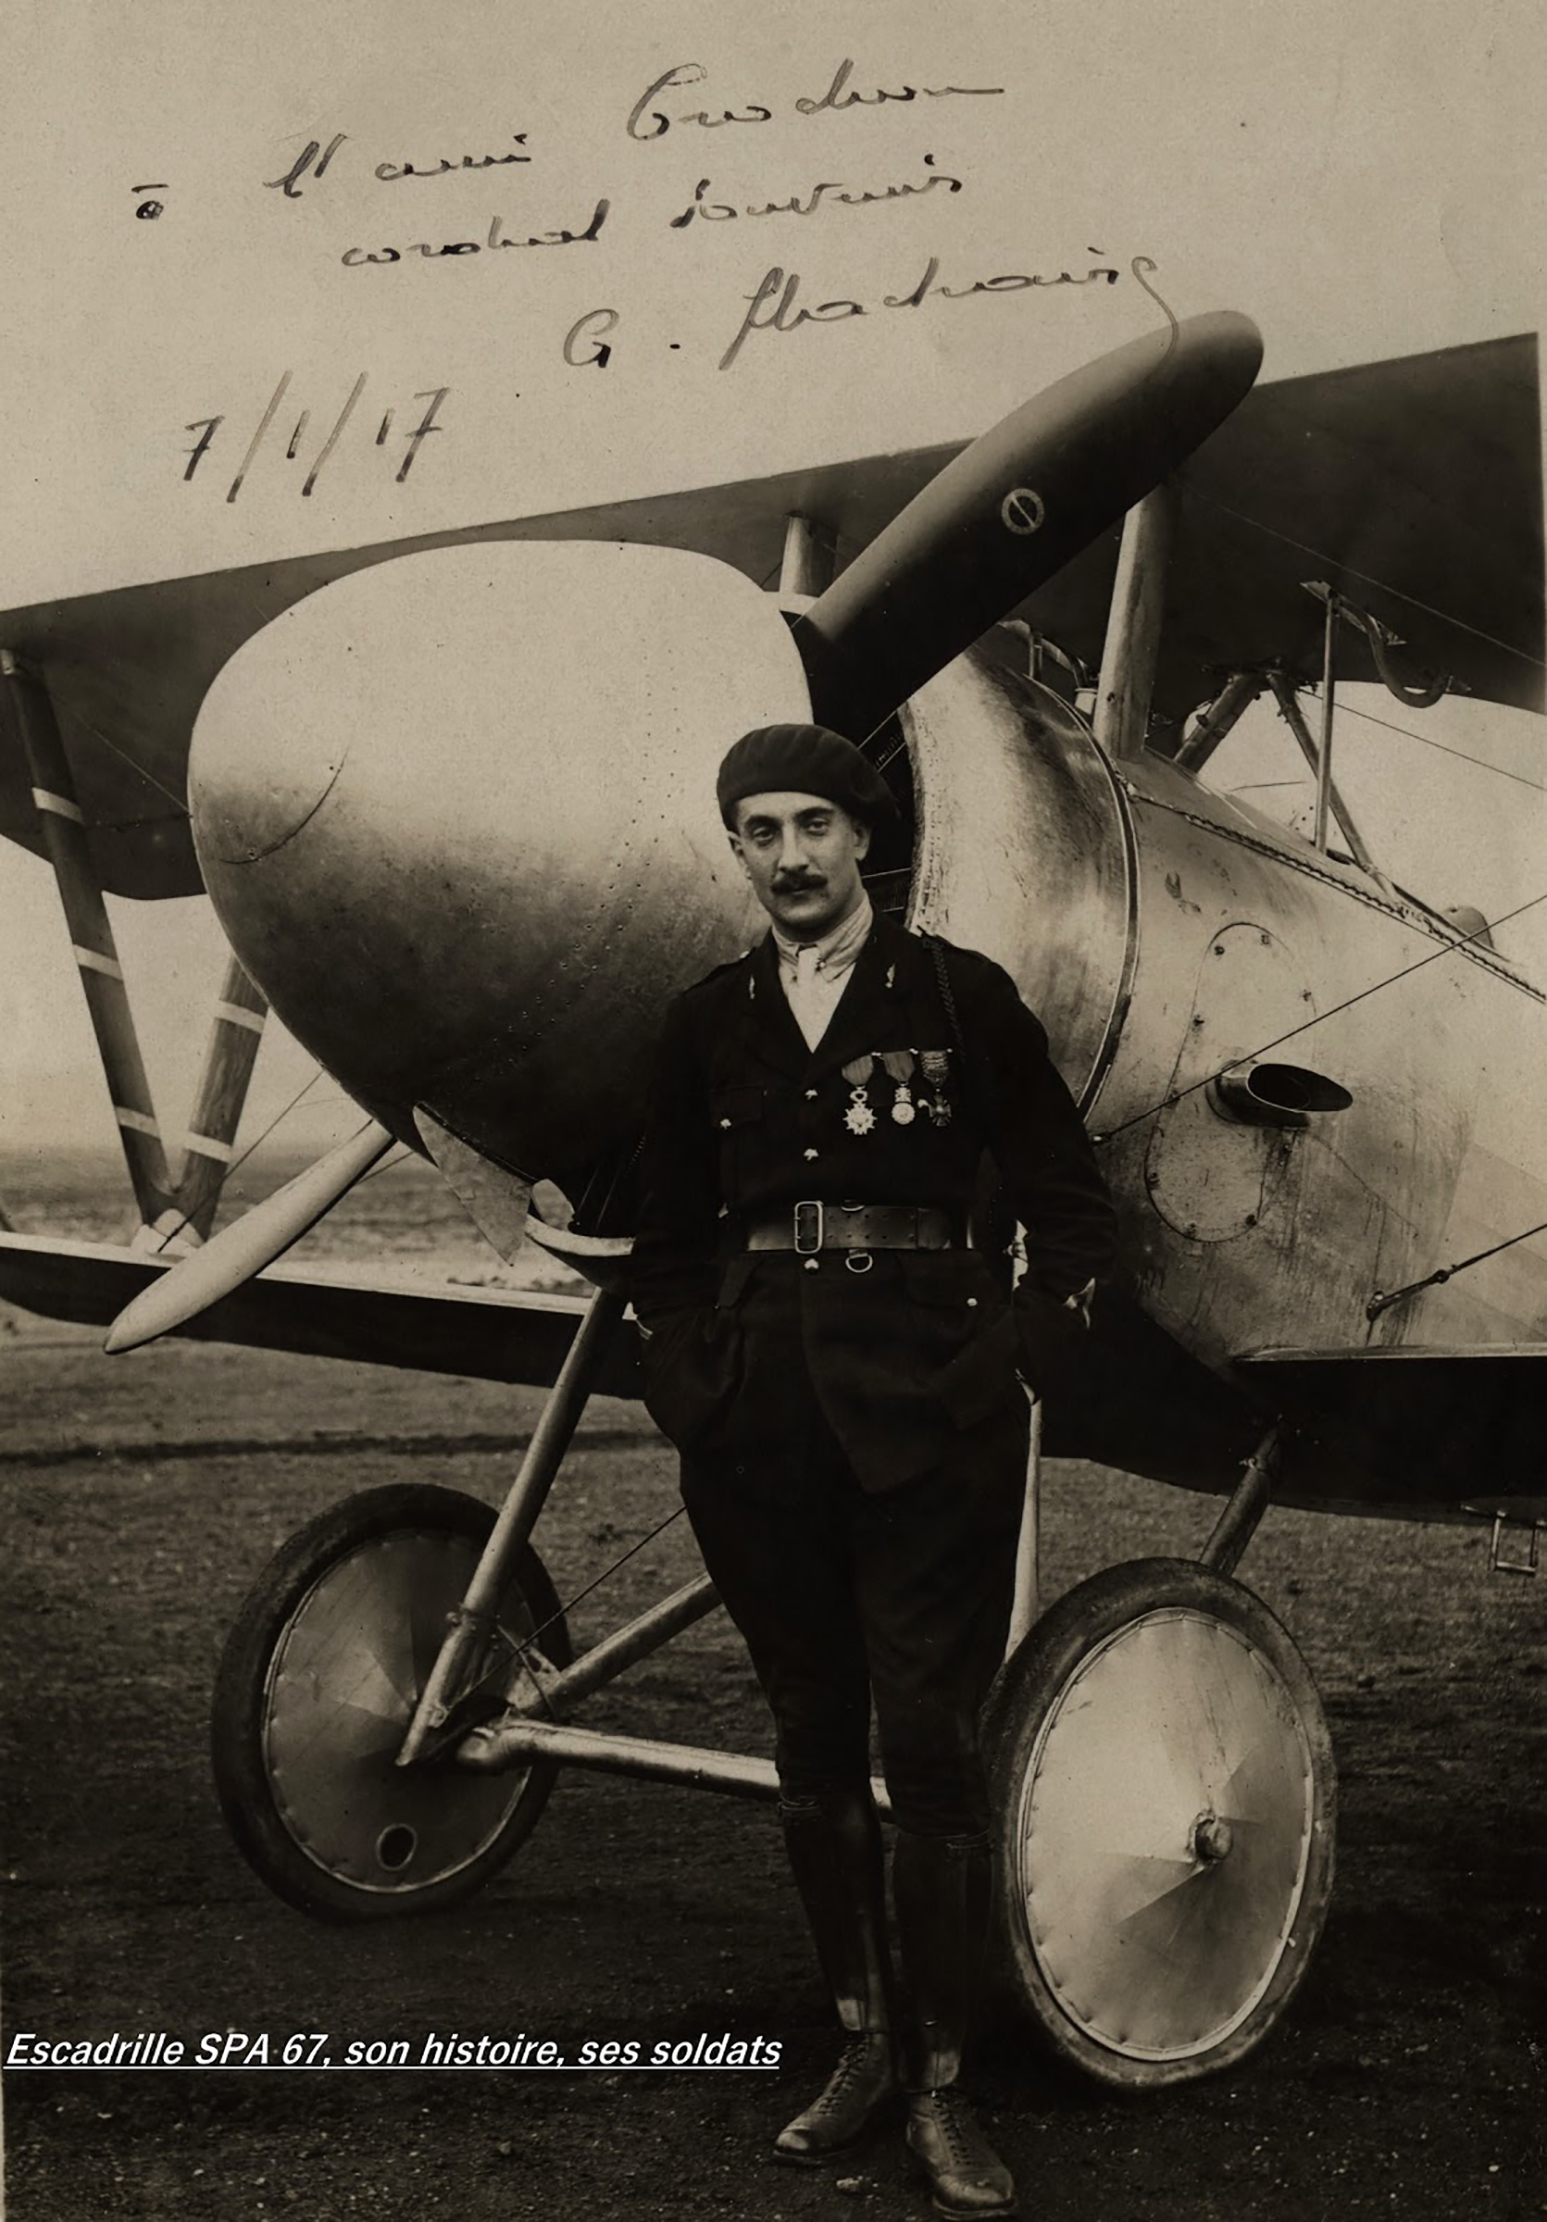 An old photograph of a man wearing a uniform with medals and standing in front of a vintage aircraft.